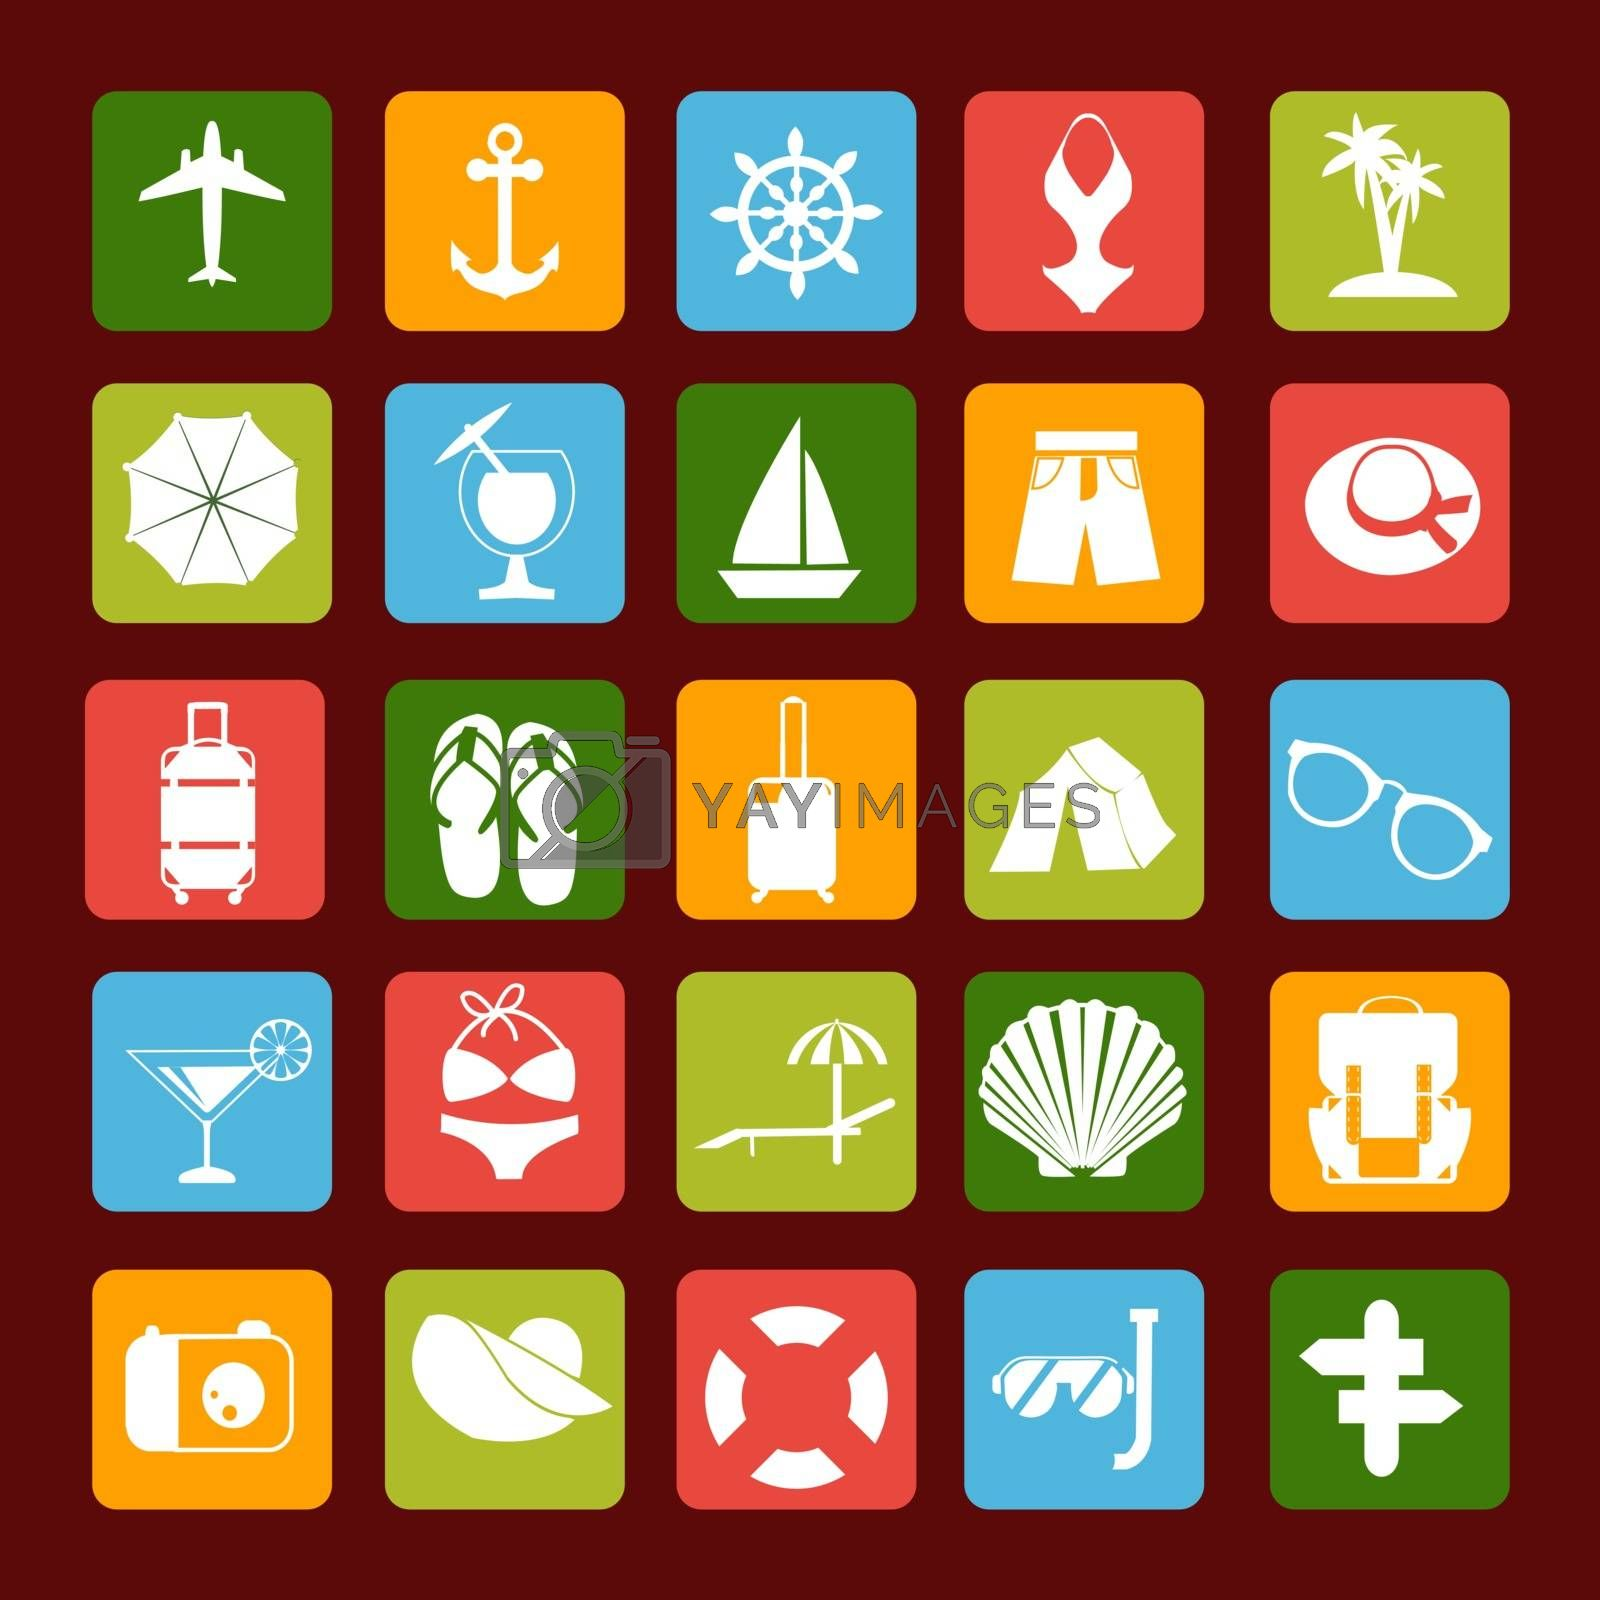 Travel and Vacation vector icons in white - Illustration